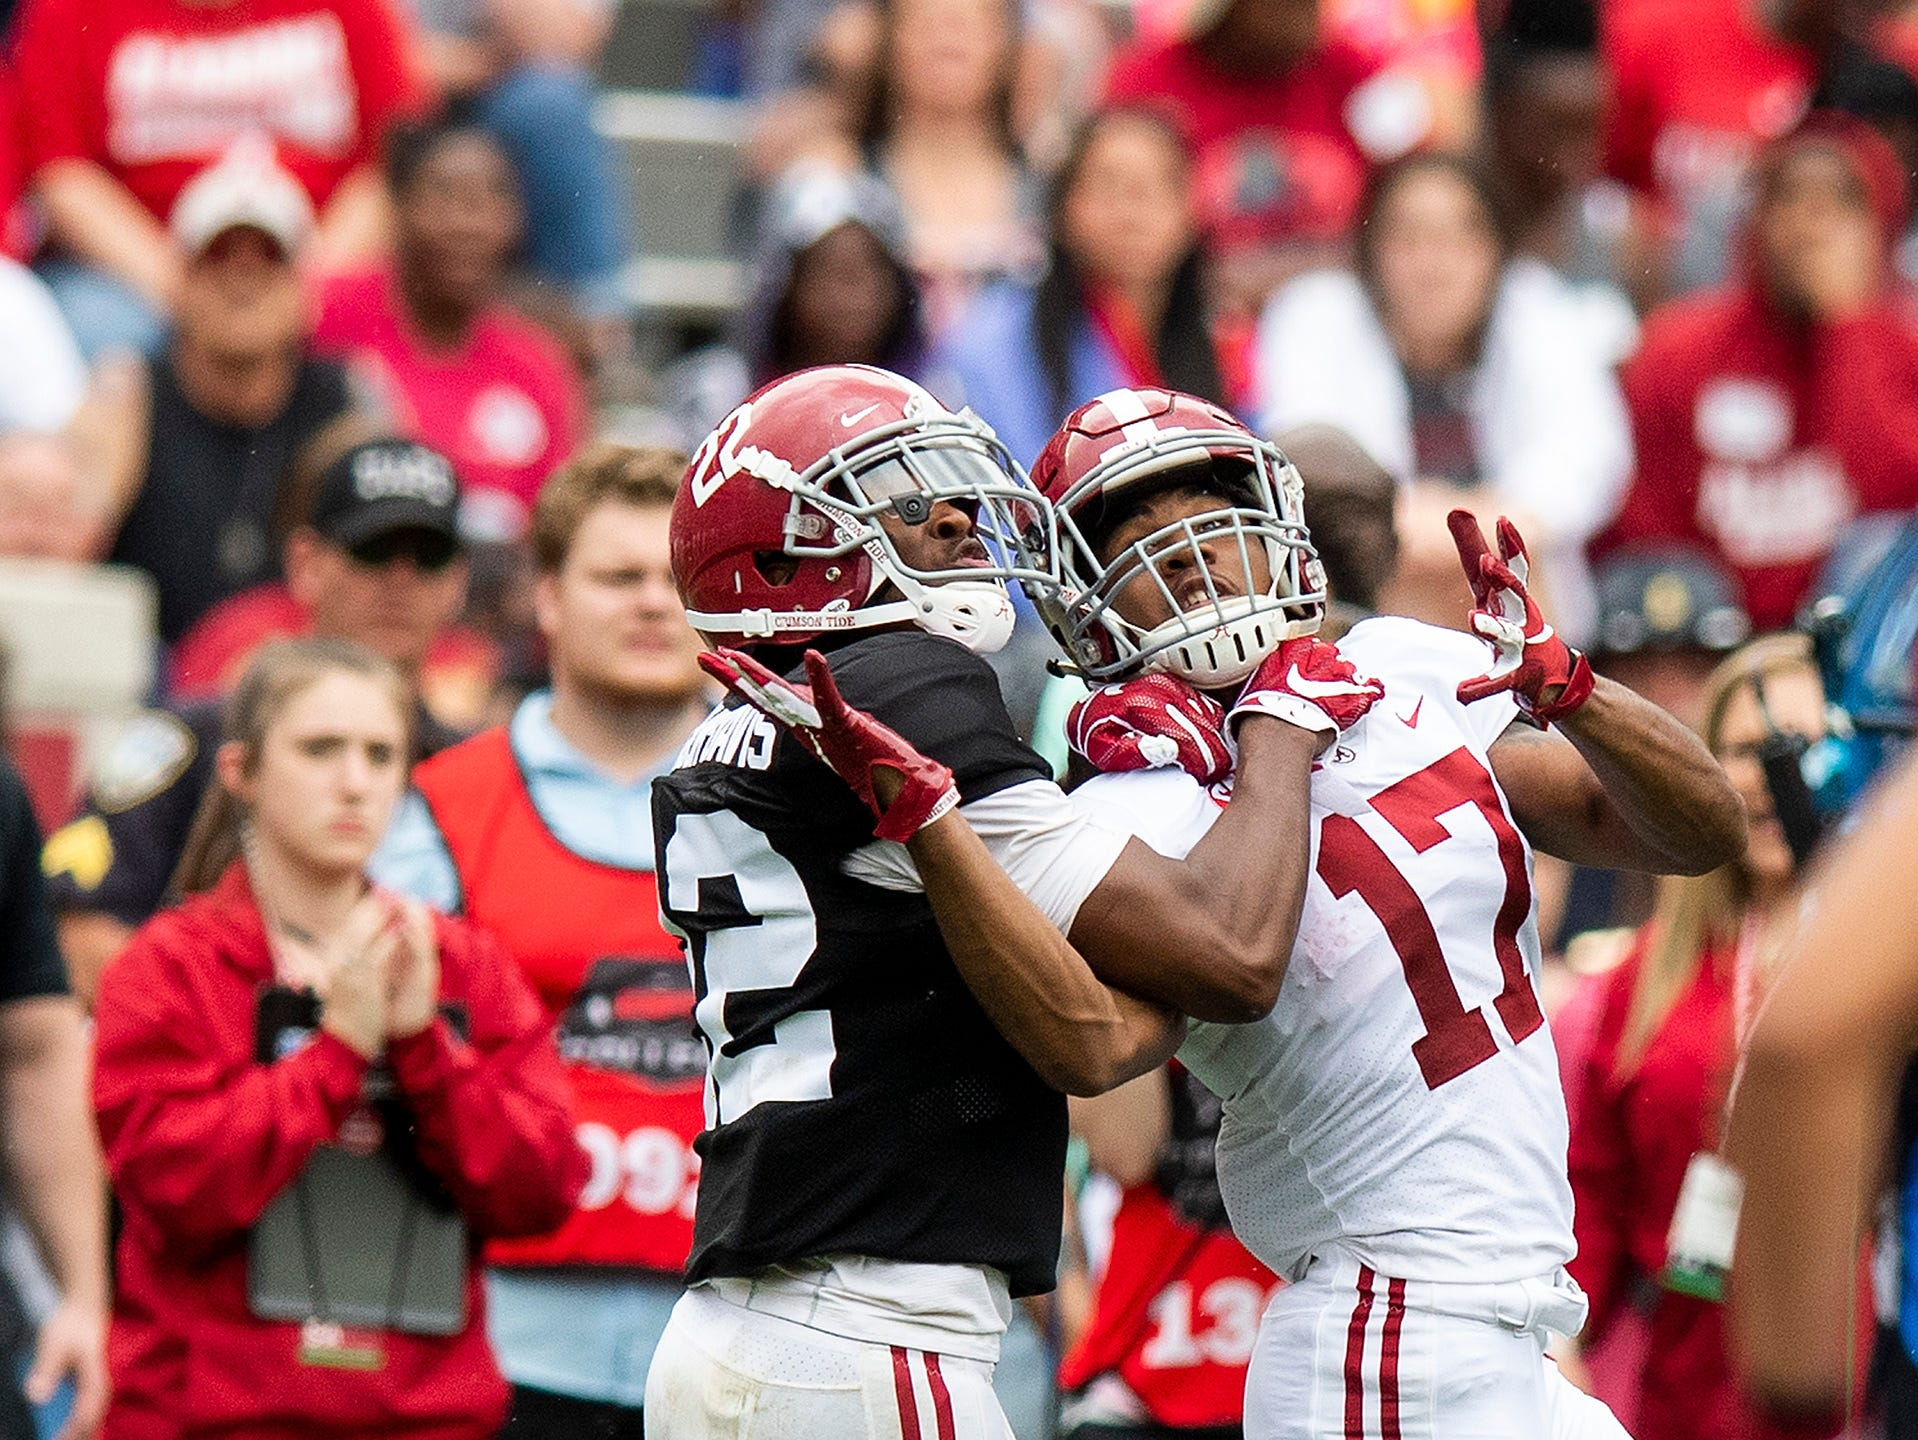 Defensive back Jalyn Armour-Davis (22) is called for interference against wide receiver Jaylen Waddle (17) during first half action in the Alabama A-Day spring football scrimmage game at Bryant Denny Stadium in Tuscaloosa, Ala., on Saturday April 13, 2019.